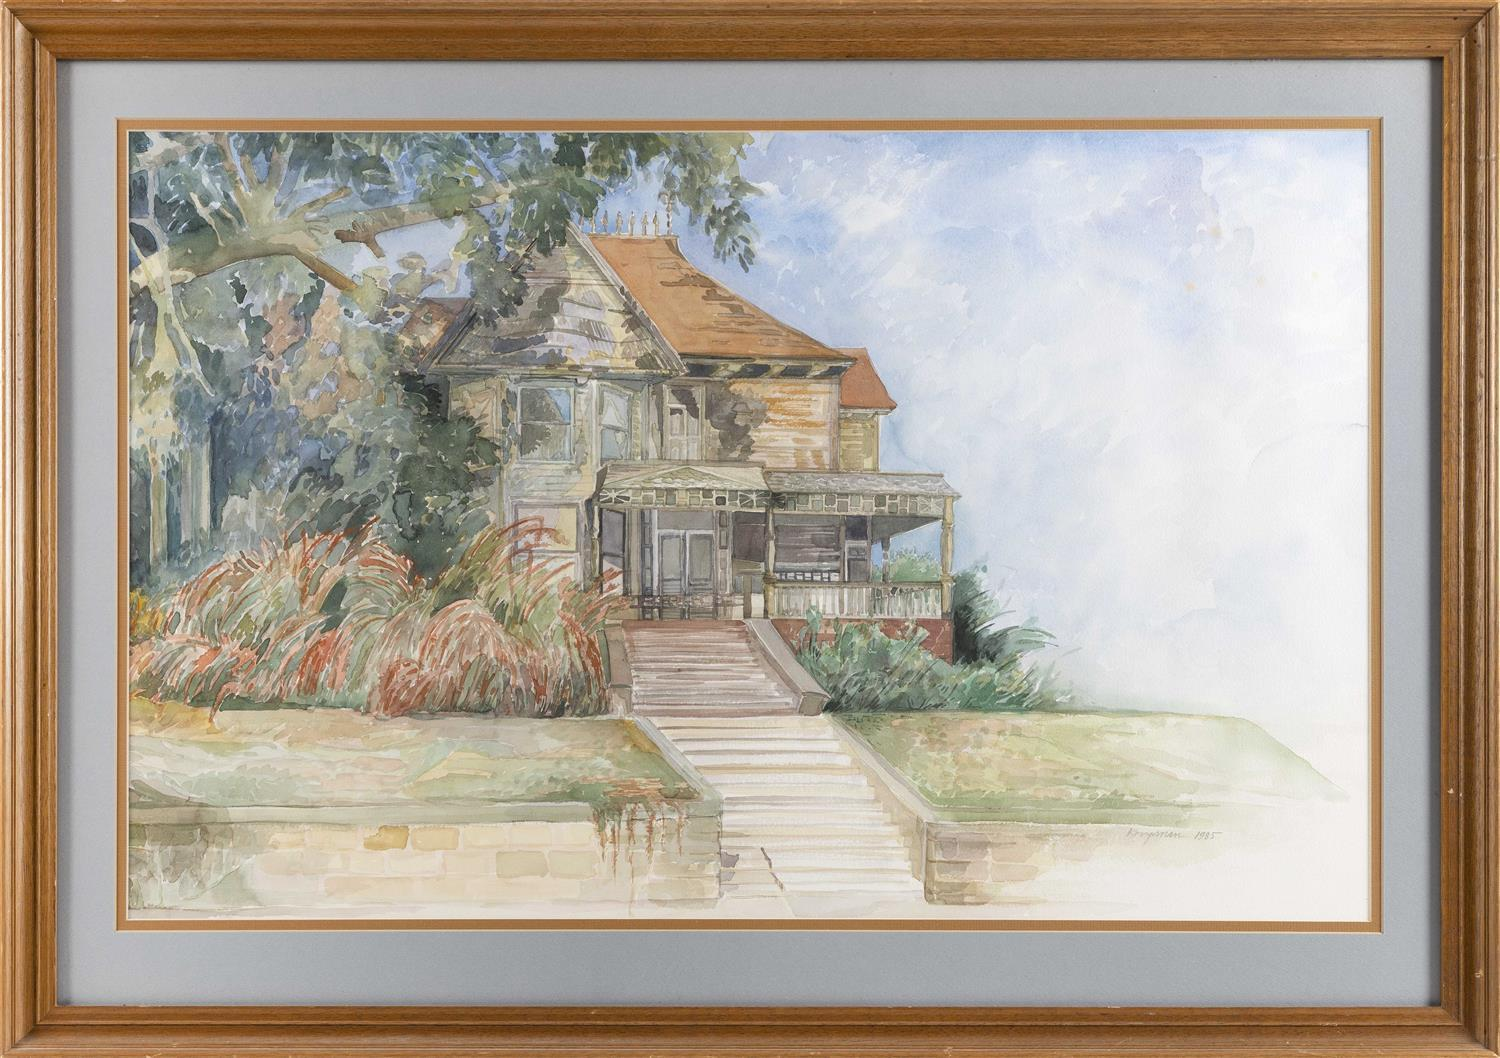 "RICHARD KOOYMAN, America, Contemporary, View of a house., Watercolor on paper, 22"" x 35"" sight. Framed 30"" x 42""."